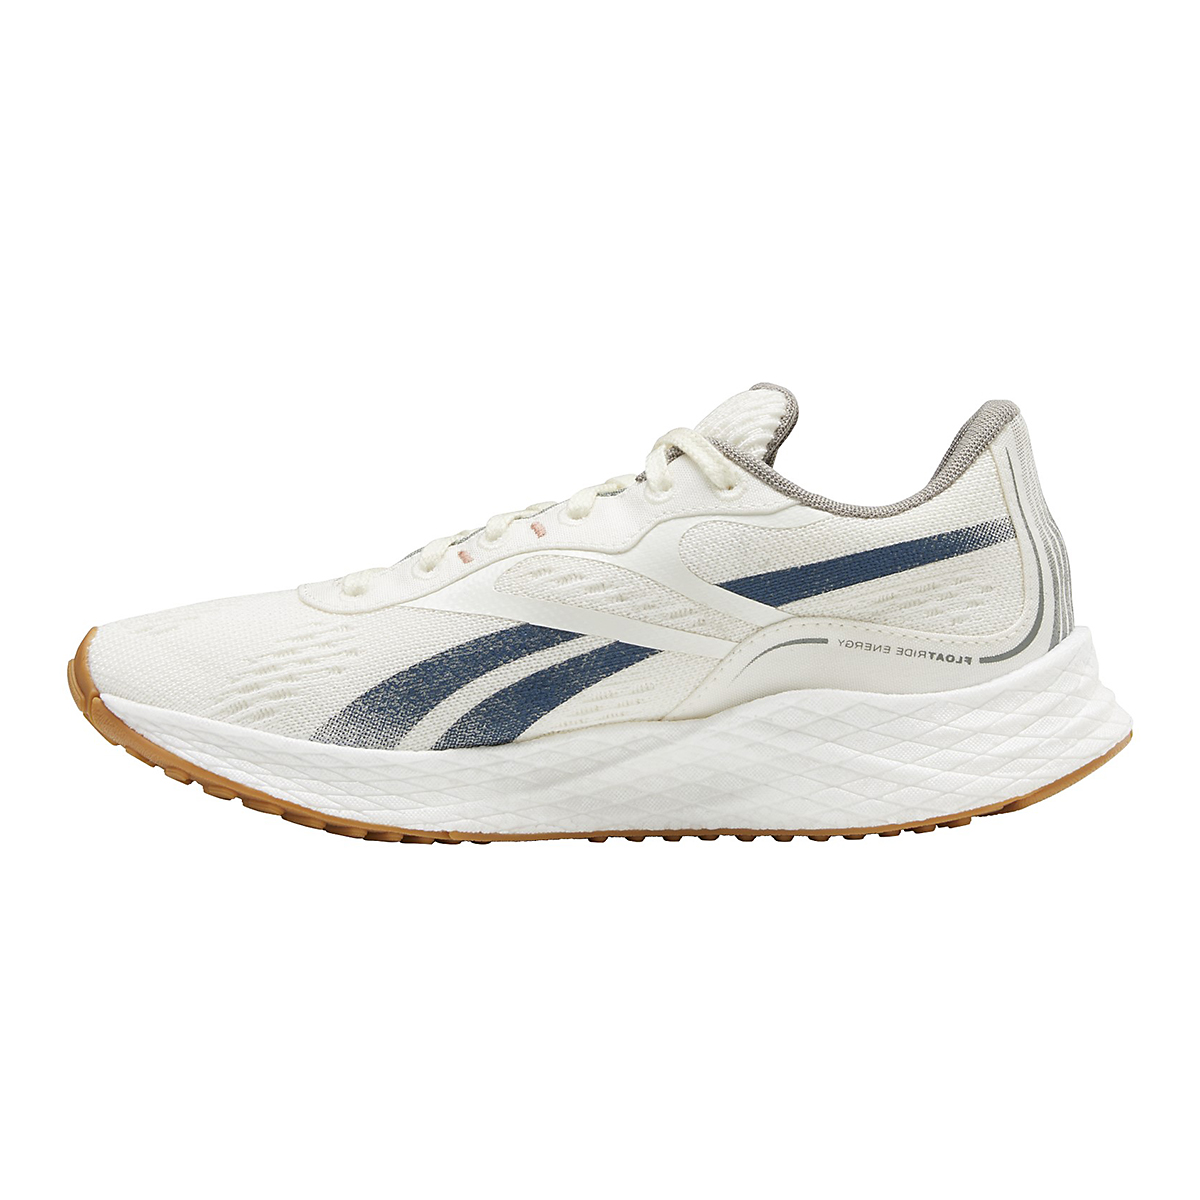 Women's Reebok Floatride Energy Grow Running Shoe - Color: Classic White/Brave Blue/Boulder Grey - Size: 5 - Width: Regular, Classic White/Brave Blue/Boulder Grey, large, image 2